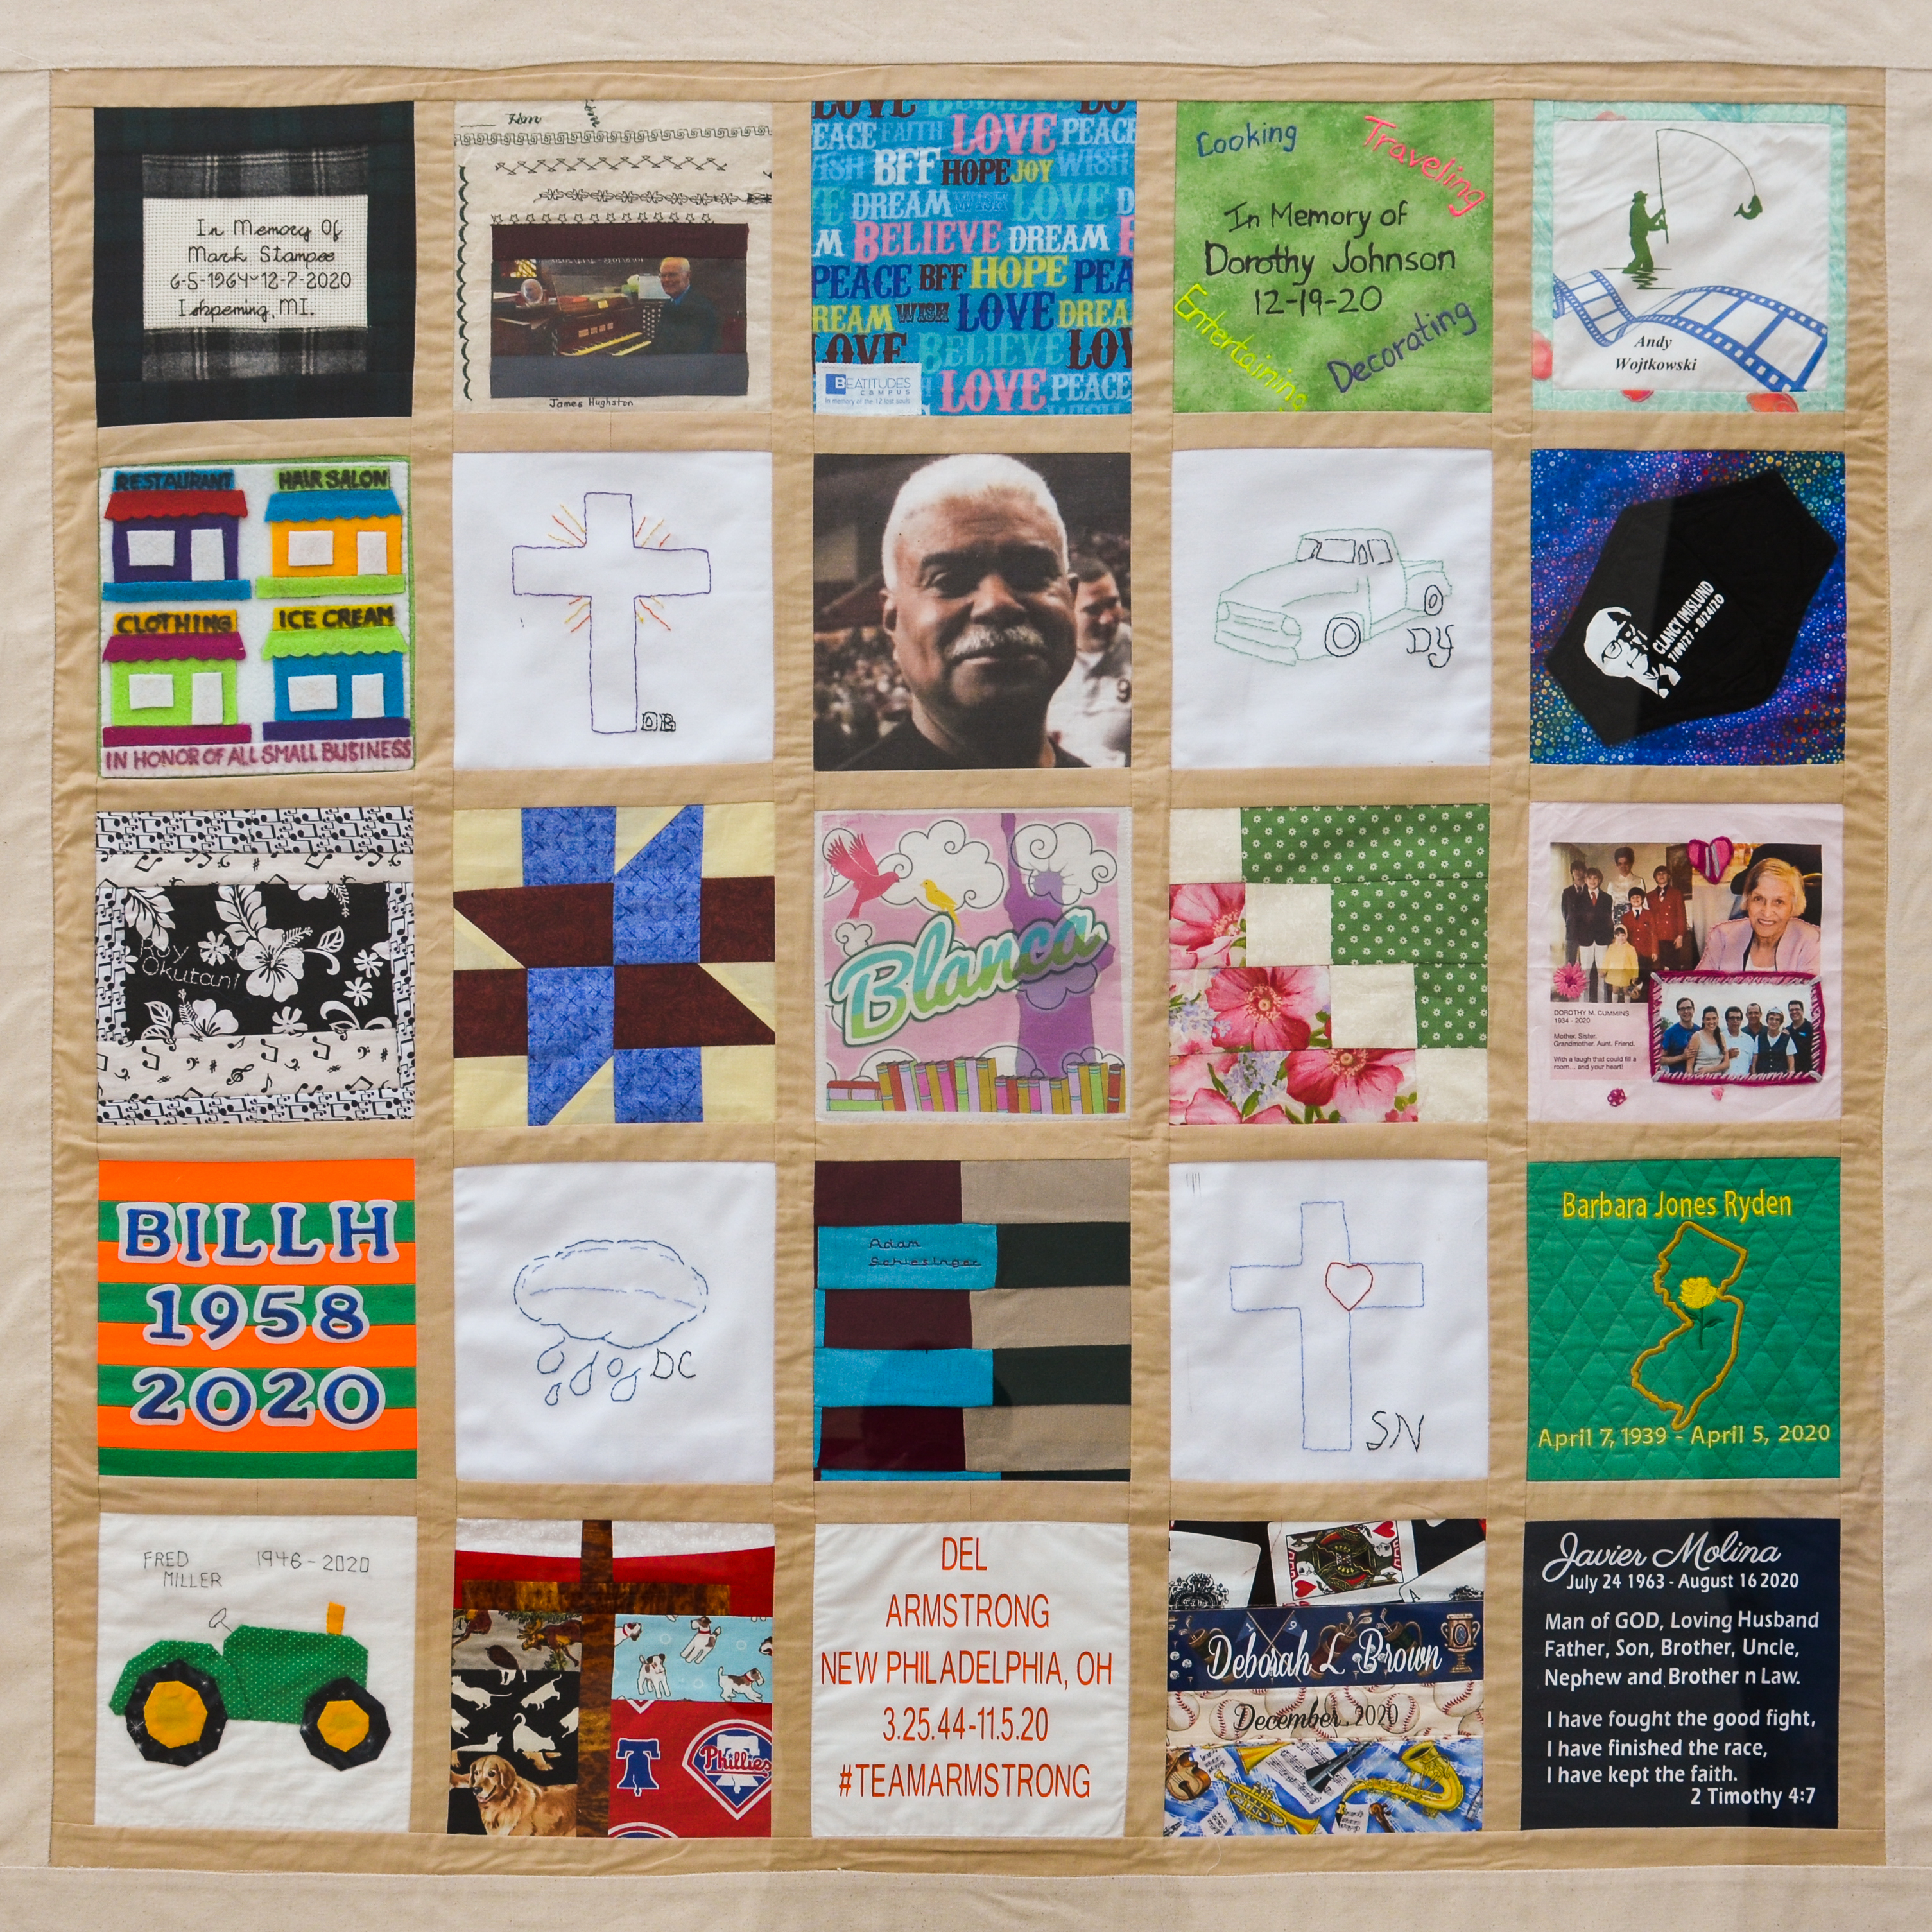 This colorful panel of the COVID-19 memorial quilt features 25 homemade fabric squares sewn in a five-by-five grid